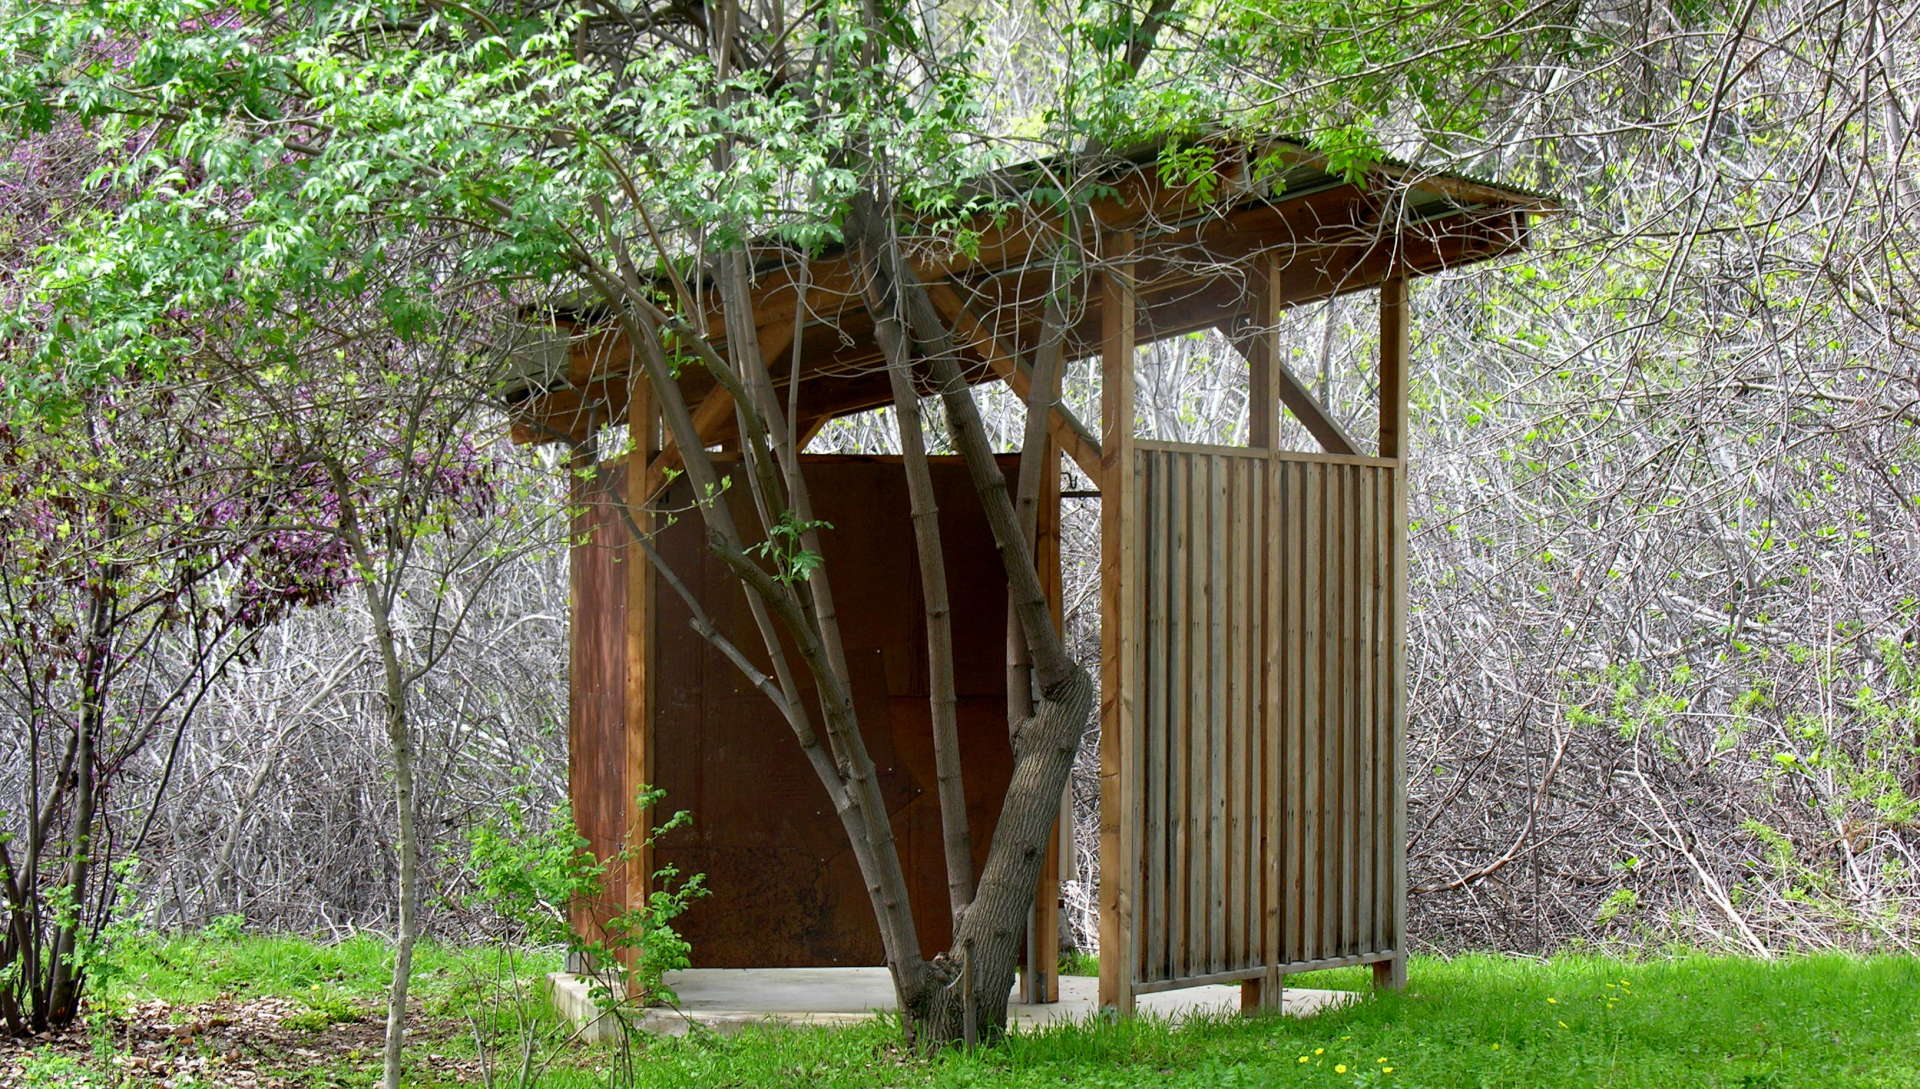 Sycamore Arch, 722 Acre Ranch Preserve, CA: 39 Hipcamper reviews and ...